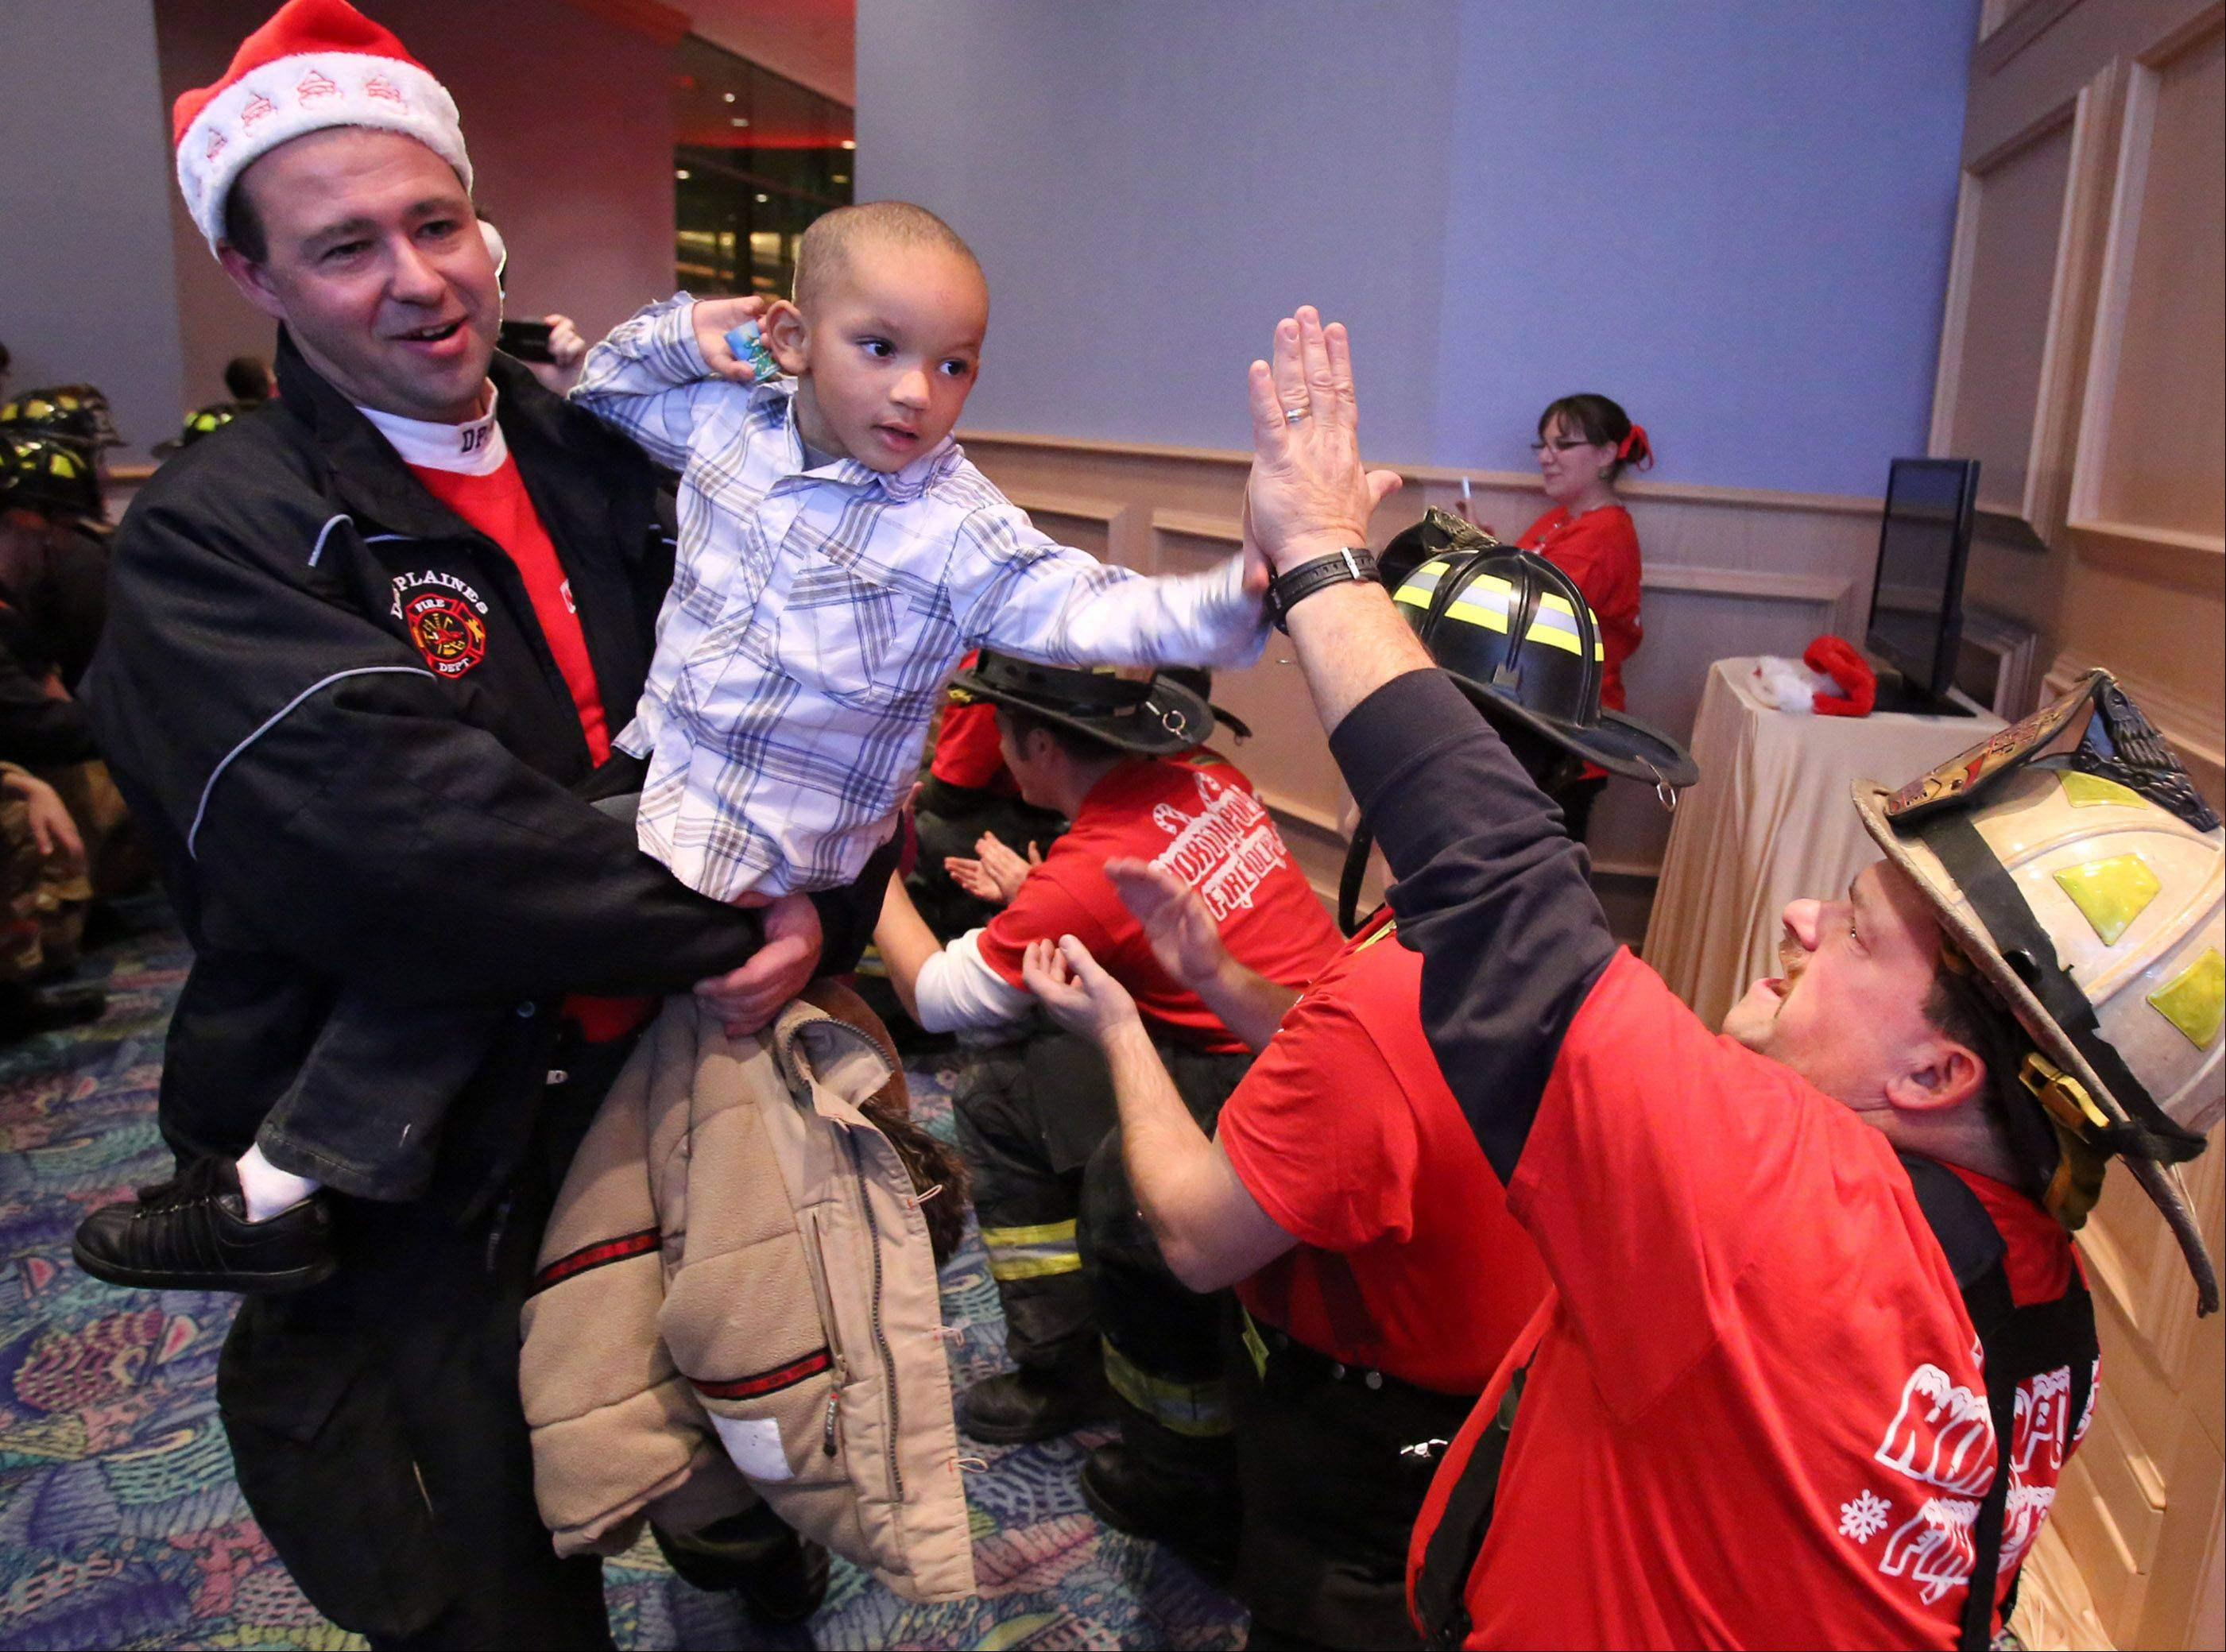 Mike Fox, district chief with the North Maine Fire Protection District, gives a high-five to Neko Rias, 4, of Chicago, being carried by Jim Utinans, engineer with Des Plaines Fire Department, through a Gauntlet of Honor made up of police officers and fire department personal into Santa's Winter Wonderland at the Donald E. Stephens Rosemont Convention and Banquet Center on Saturday in Rosemont.